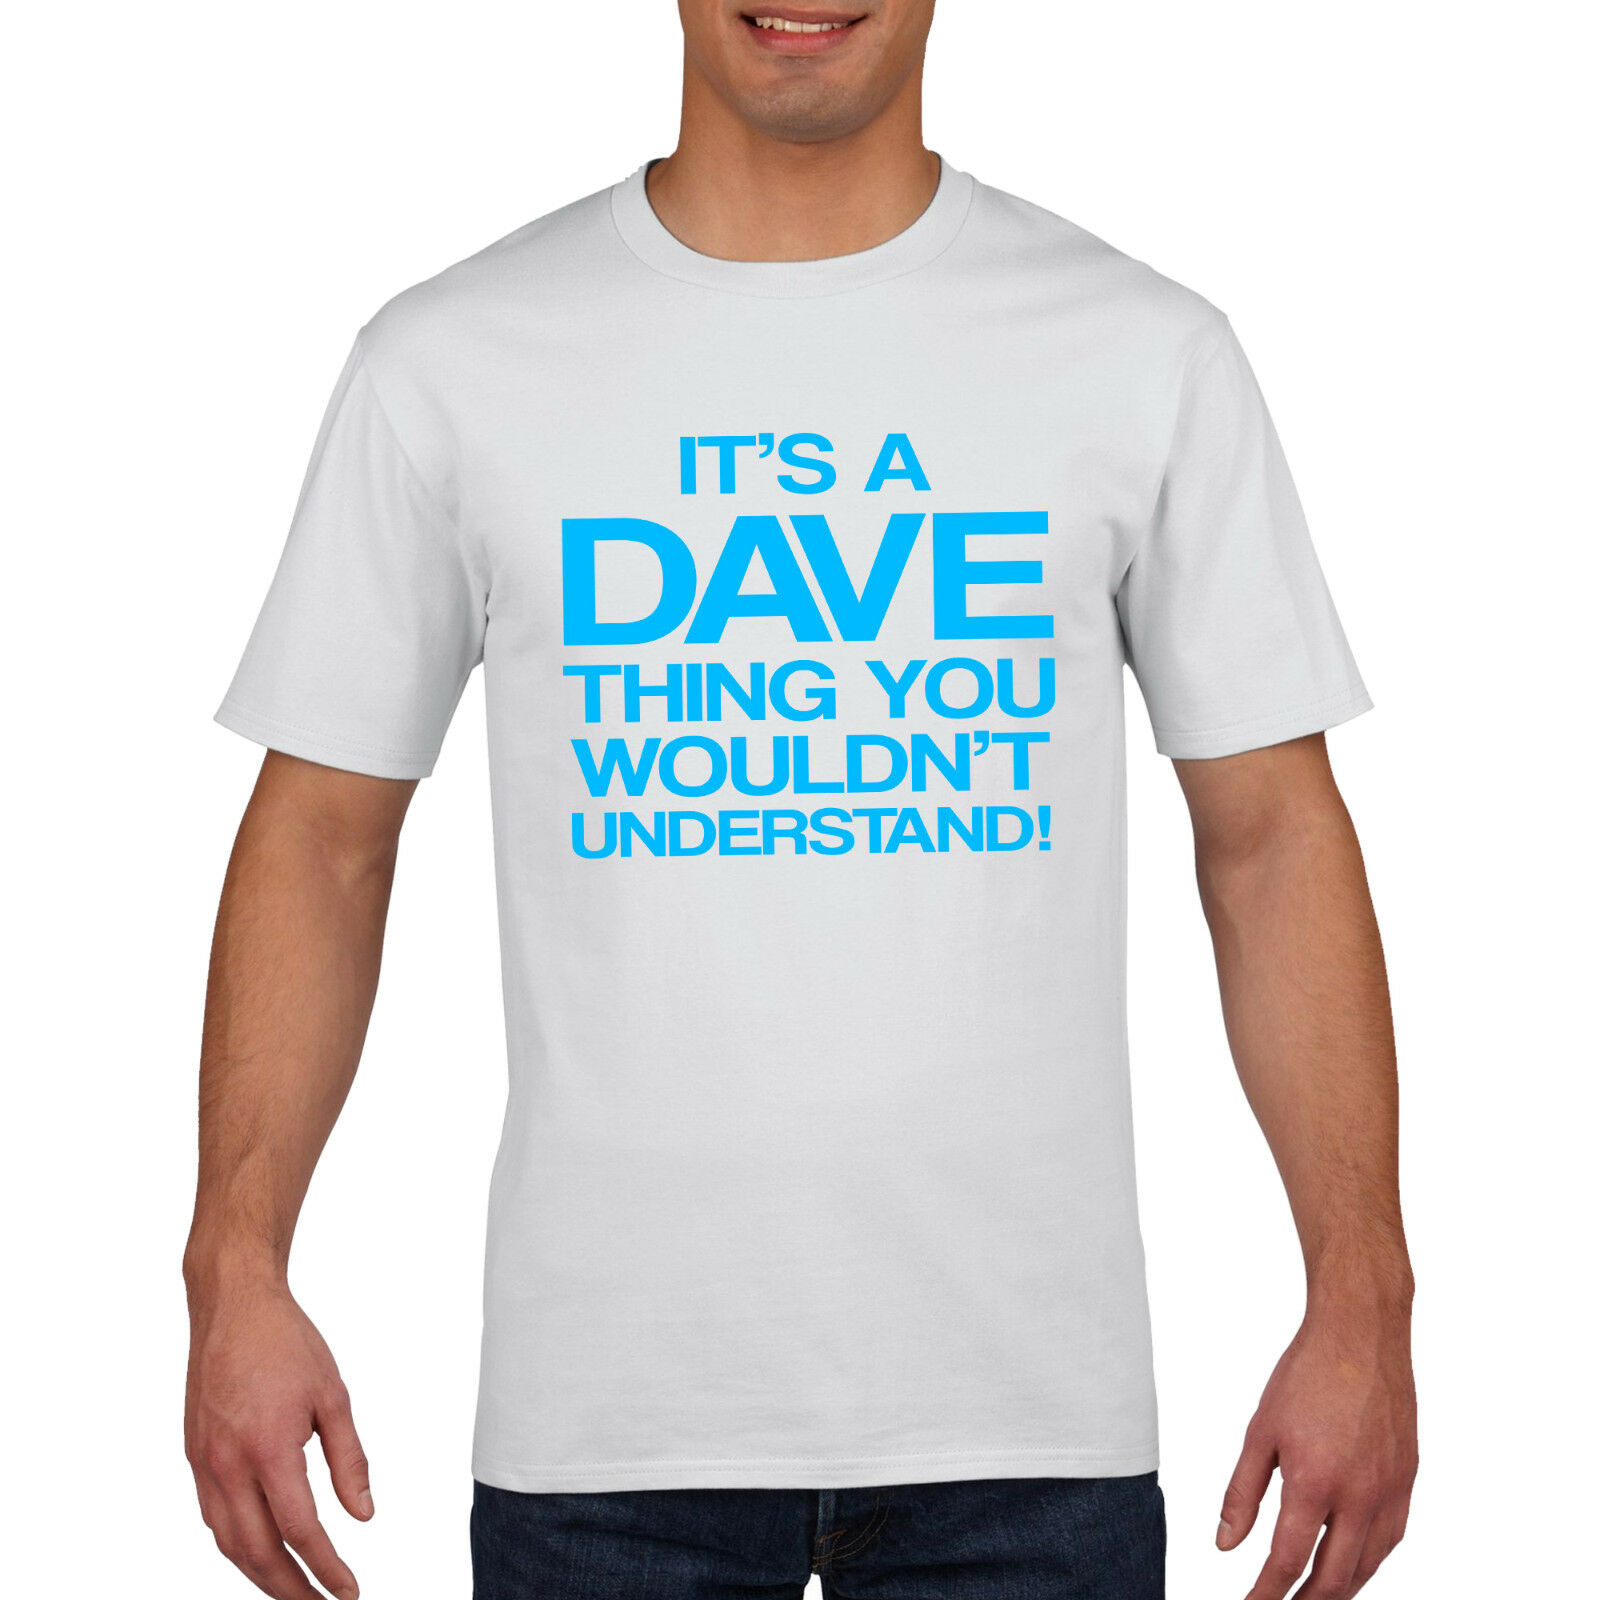 32101dd9e Details about Its a Dave Thing Funny Mens T Shirt - Fathers Day Gift Dave  Tshirt Top Tee 753